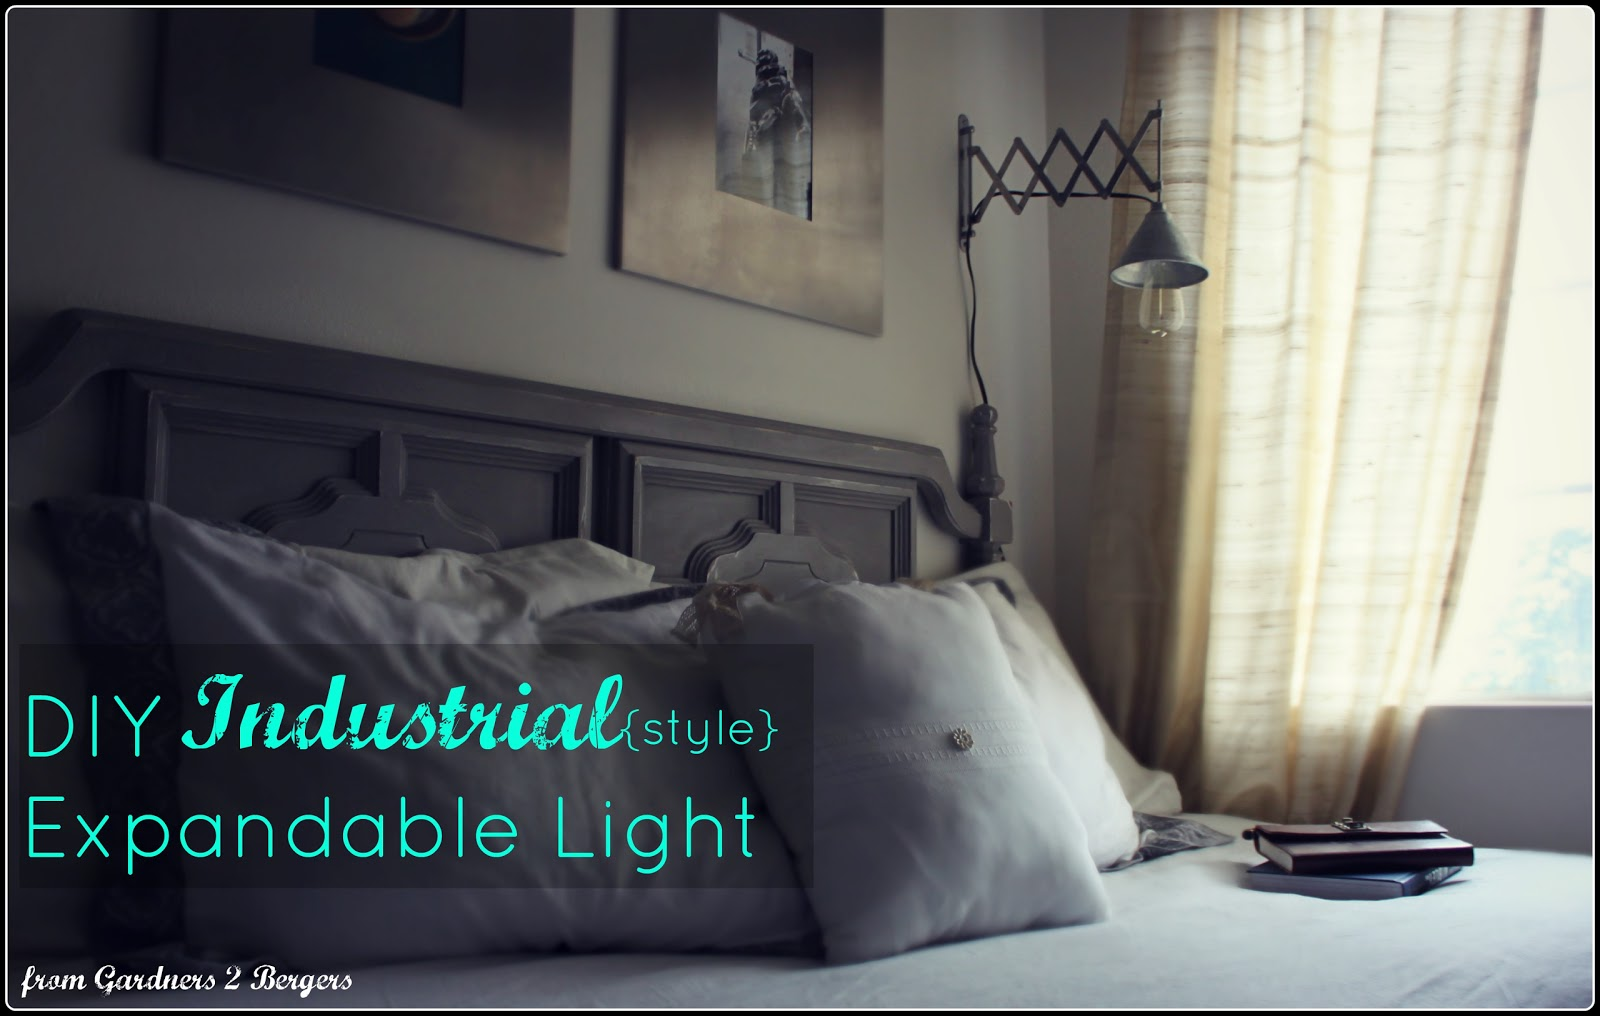 DIY-Industrial-style-SEO-Expandable-Light